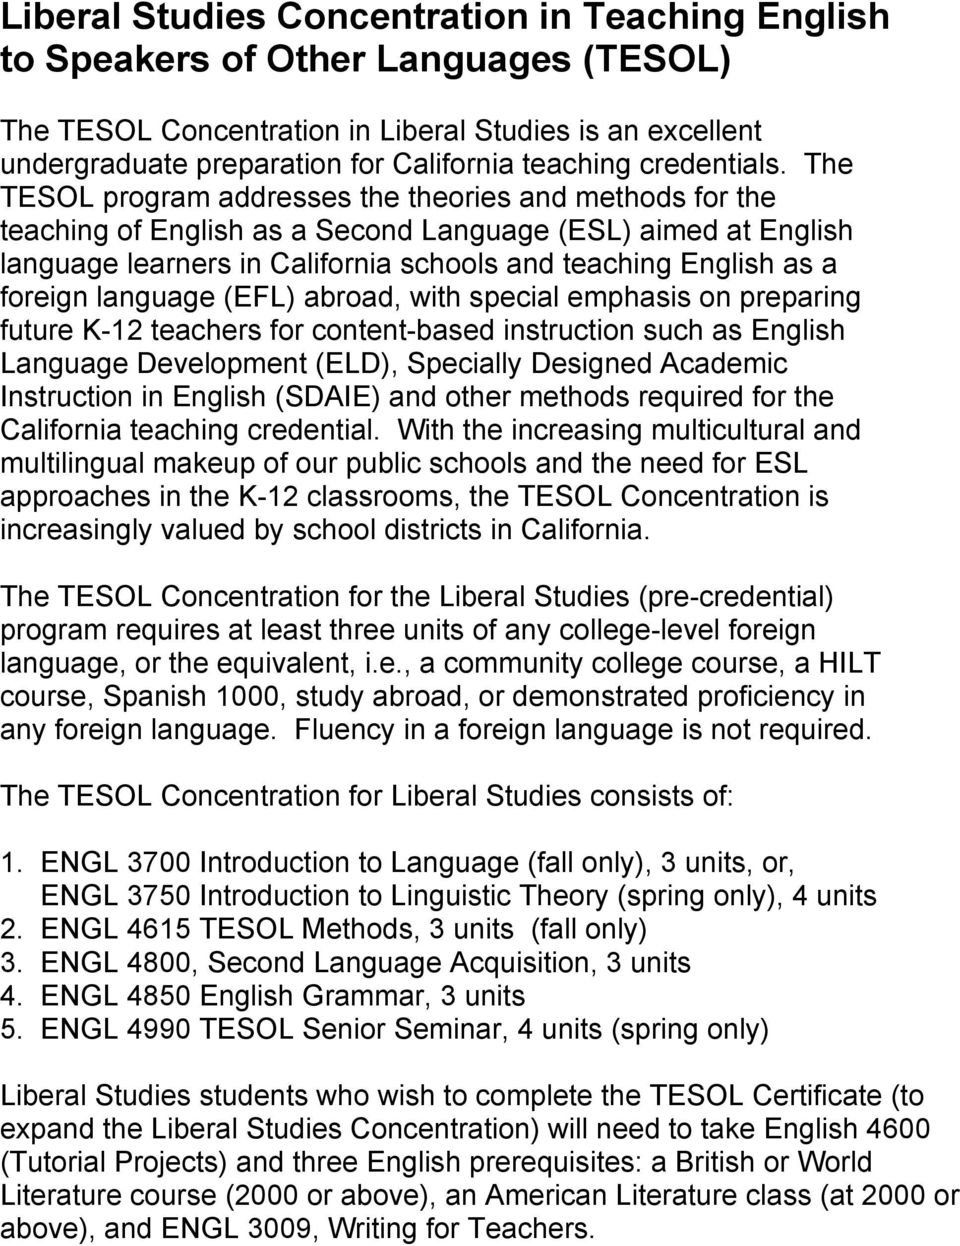 The TESOL program addresses the theories and methods for the teaching of English as a Second Language (ESL) aimed at English language learners in California schools and teaching English as a foreign